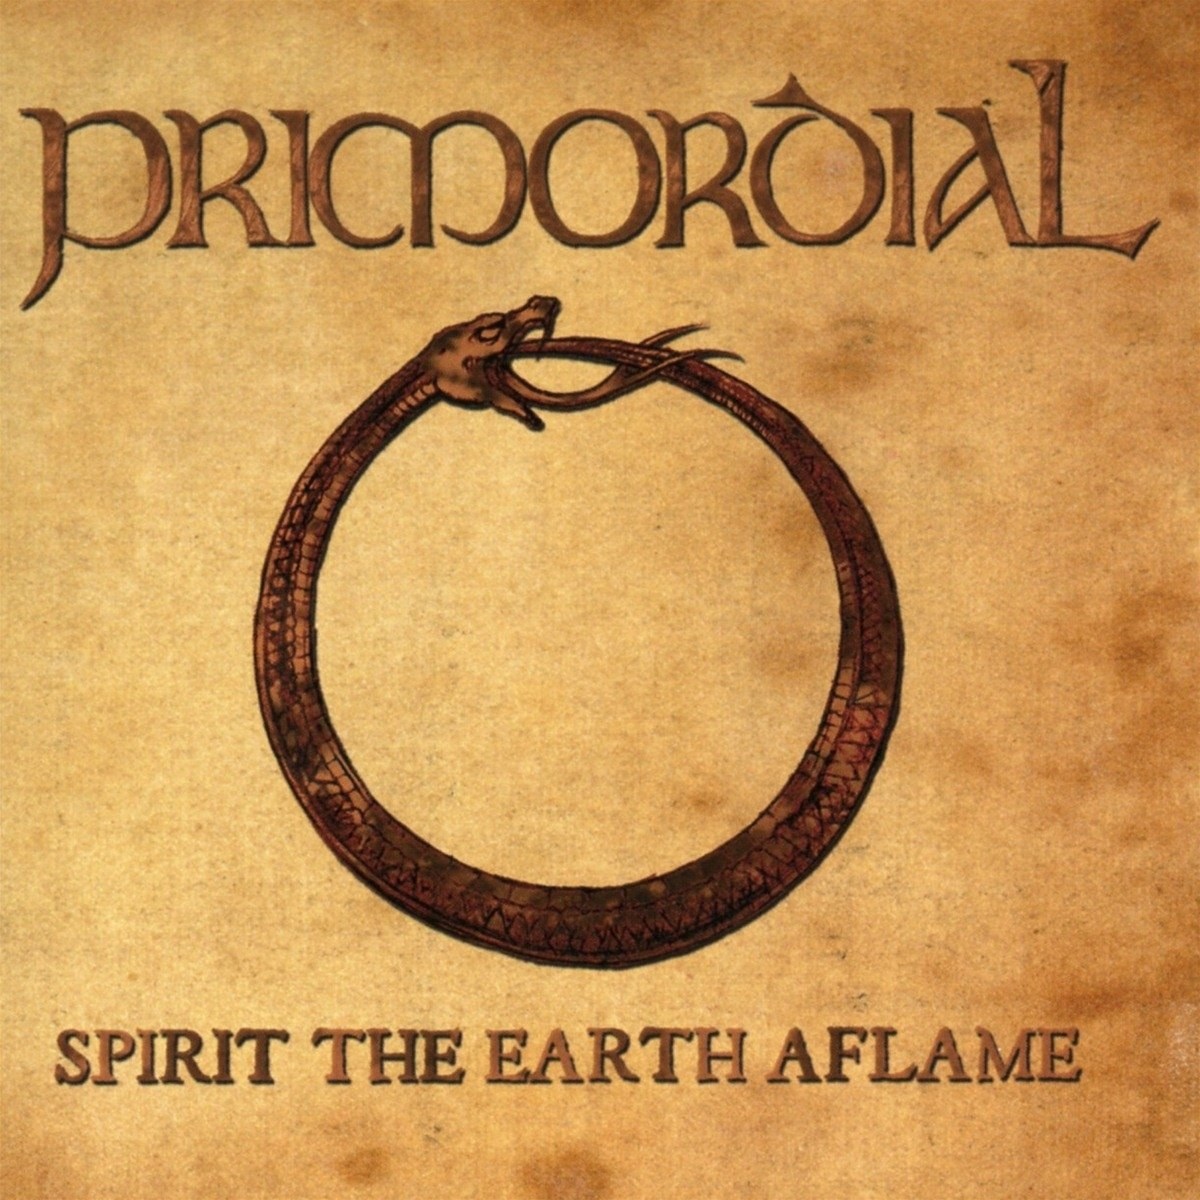 Review for Primordial - Spirit the Earth Aflame